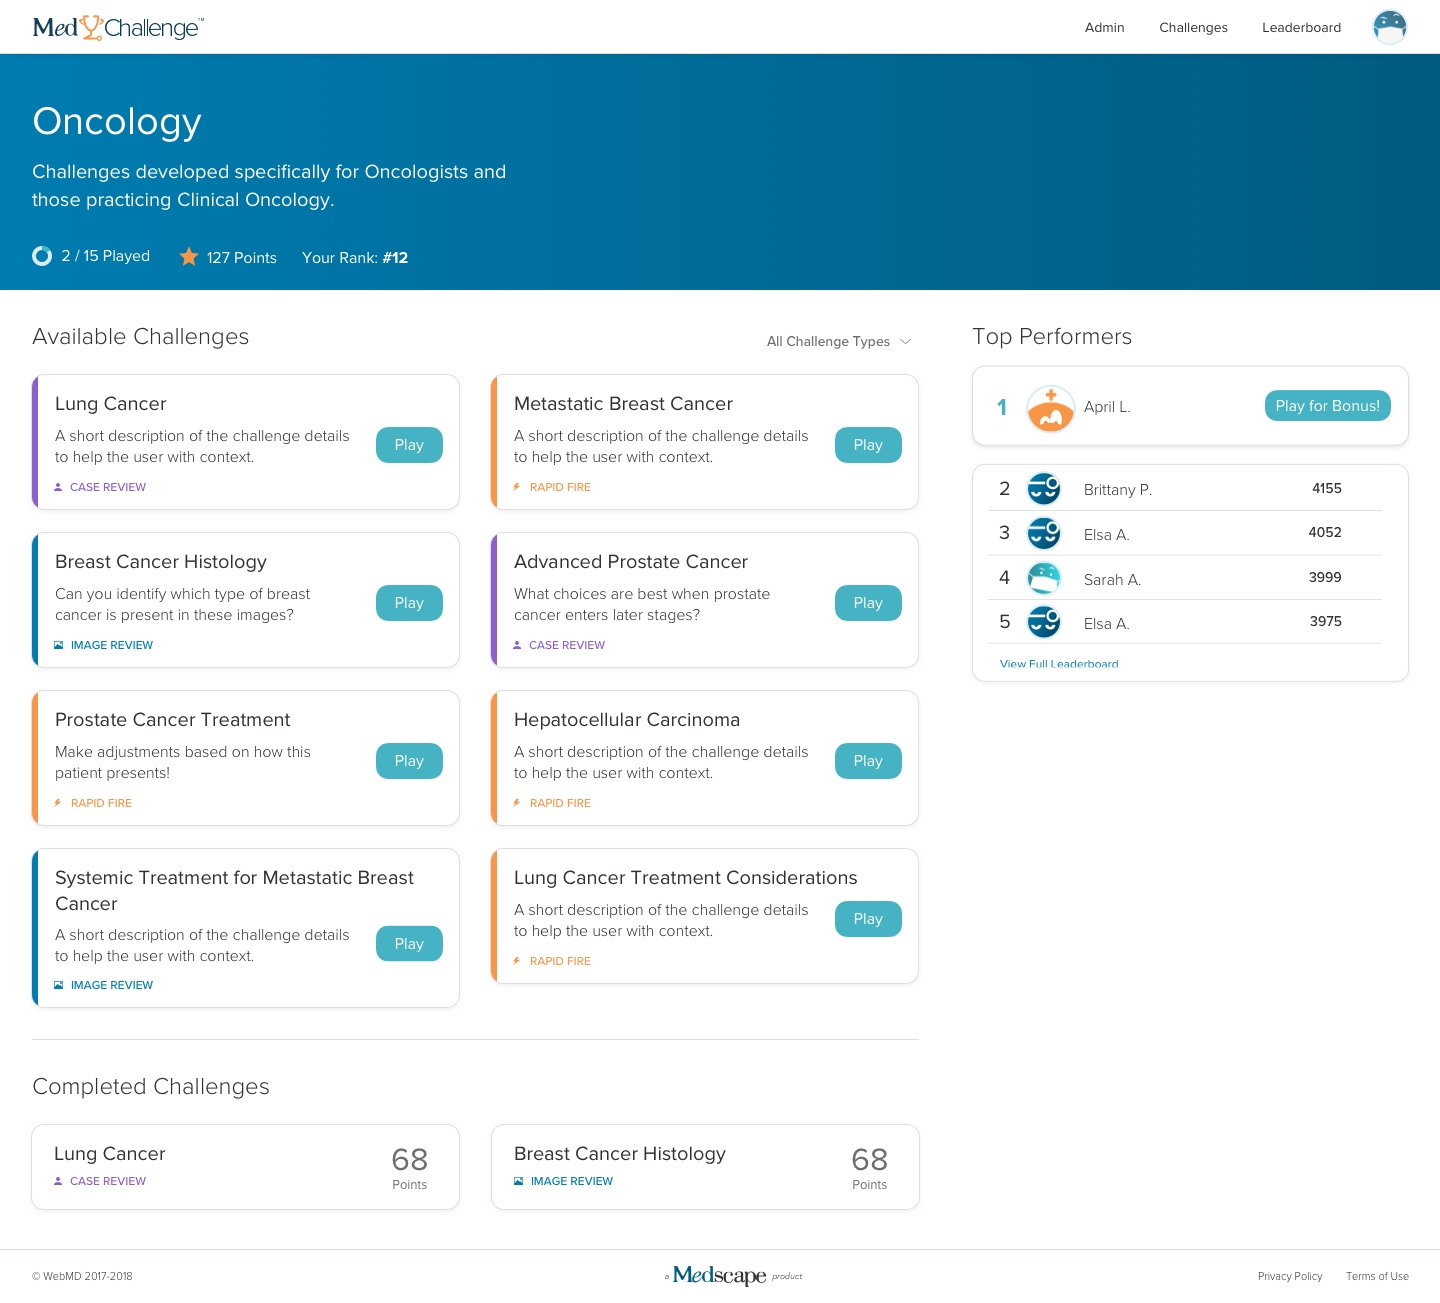 The new MedChallenge dashboard